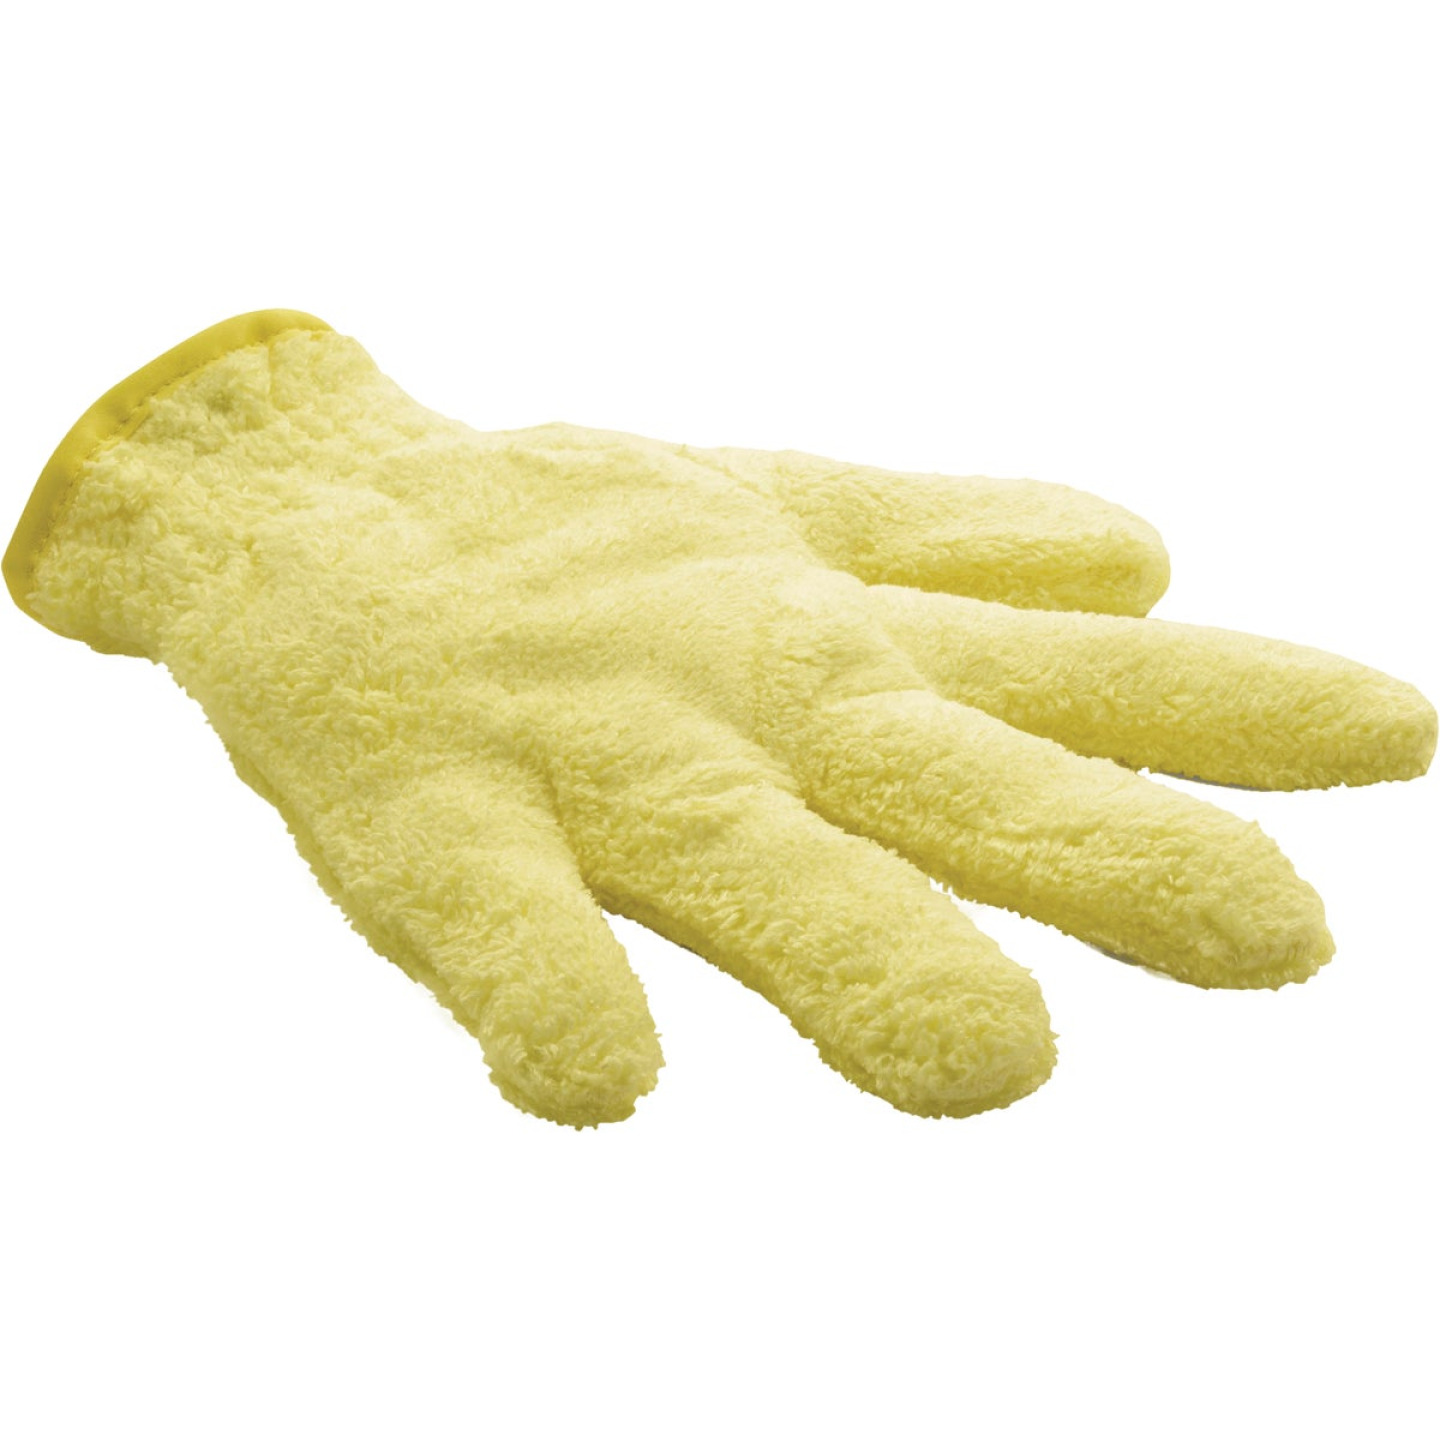 E-Cloth 8 In. x 10 In. High Performance Dusting Glove Image 1